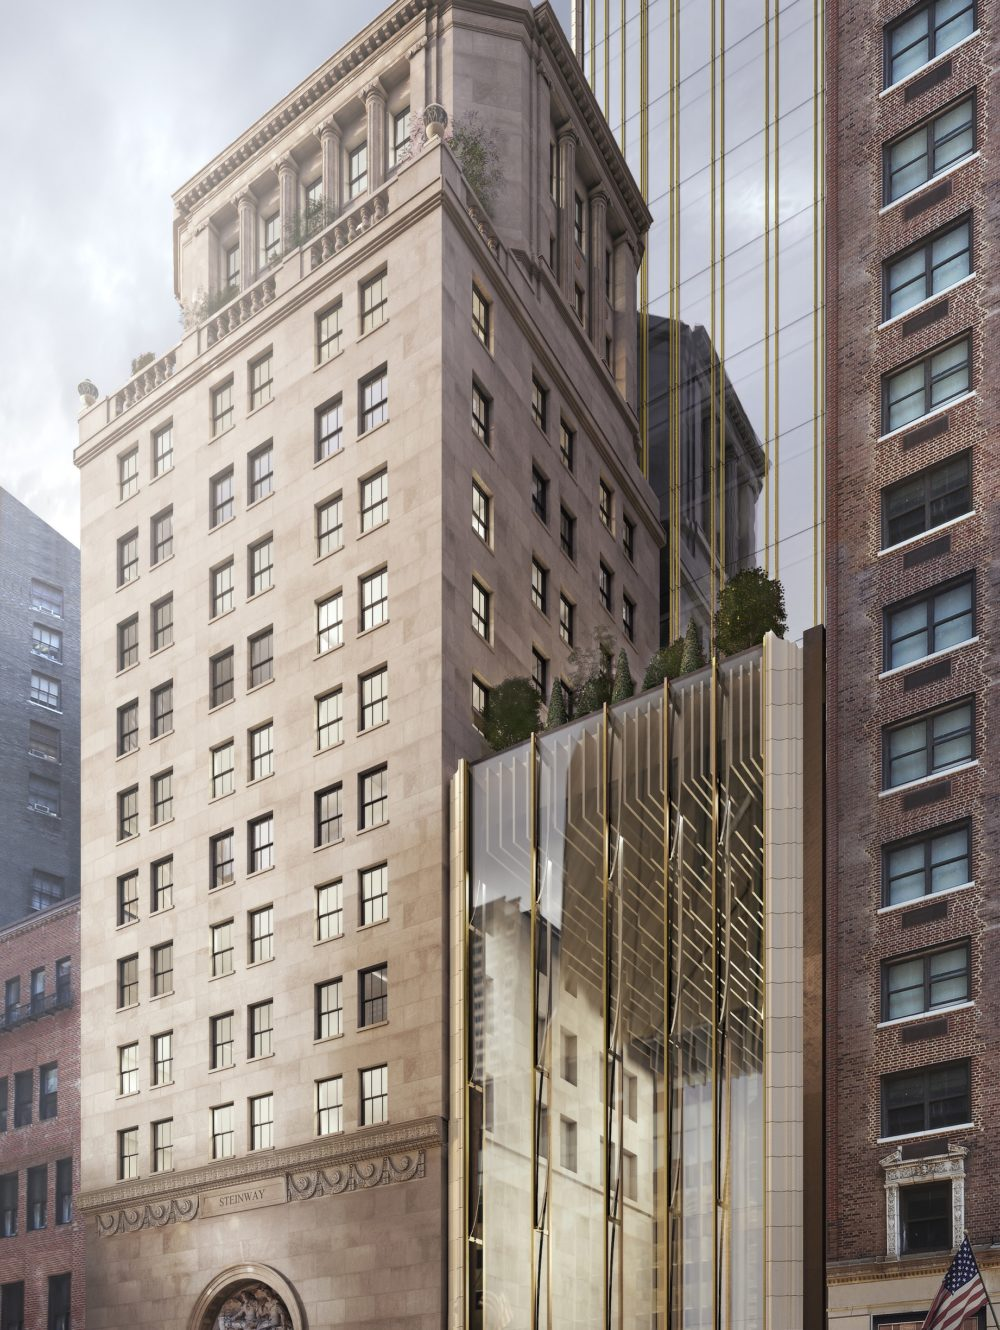 South entry view of 111 West 57th street condominiums includes surrounding buildings and the street in New York City.